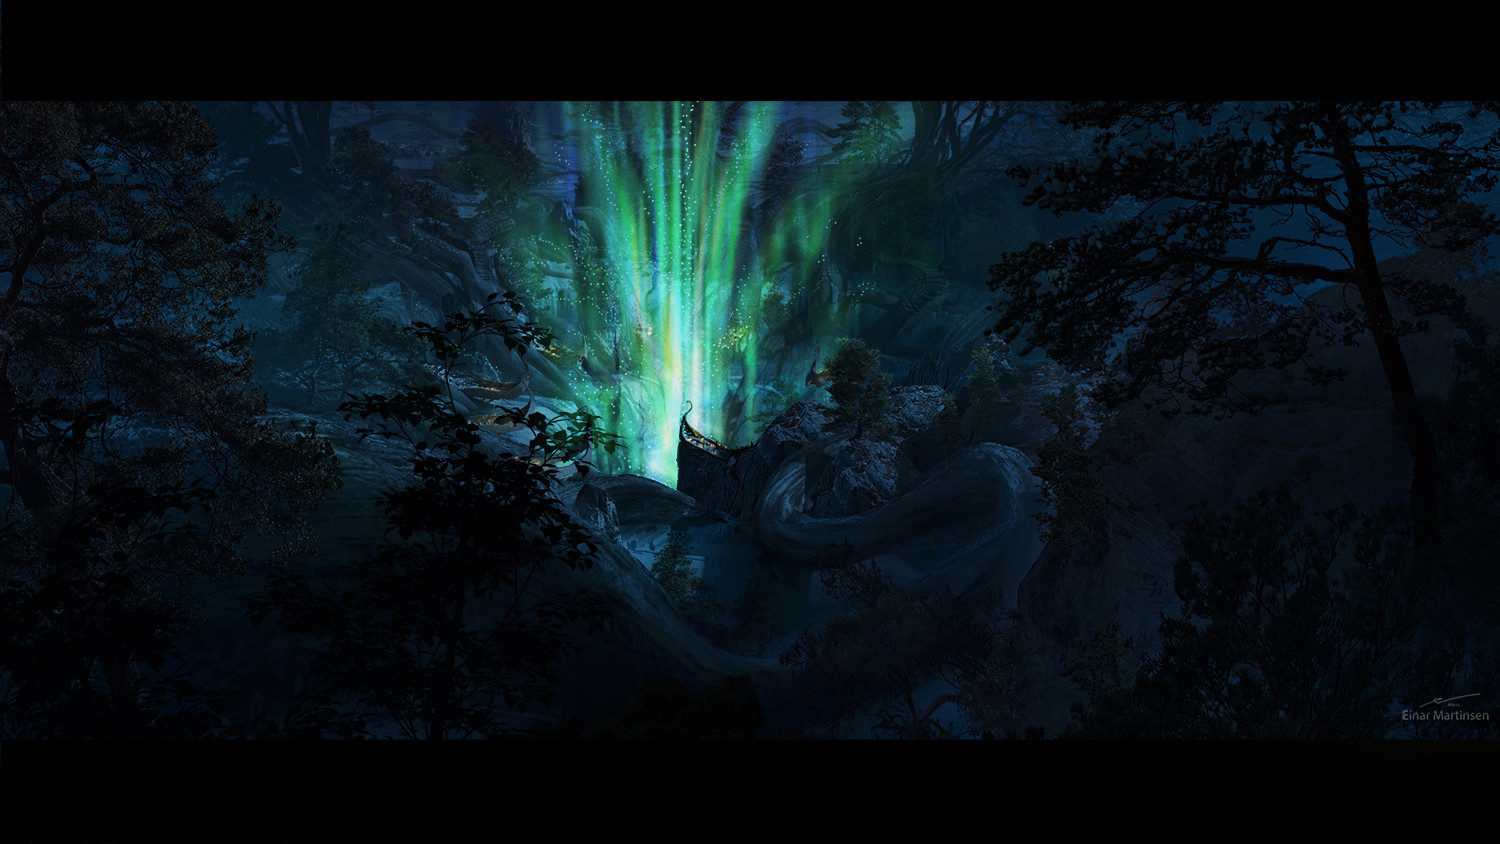 Production design course with Dylan Cole - Artwork by Einar Martinsen - Sacred place, shot 05